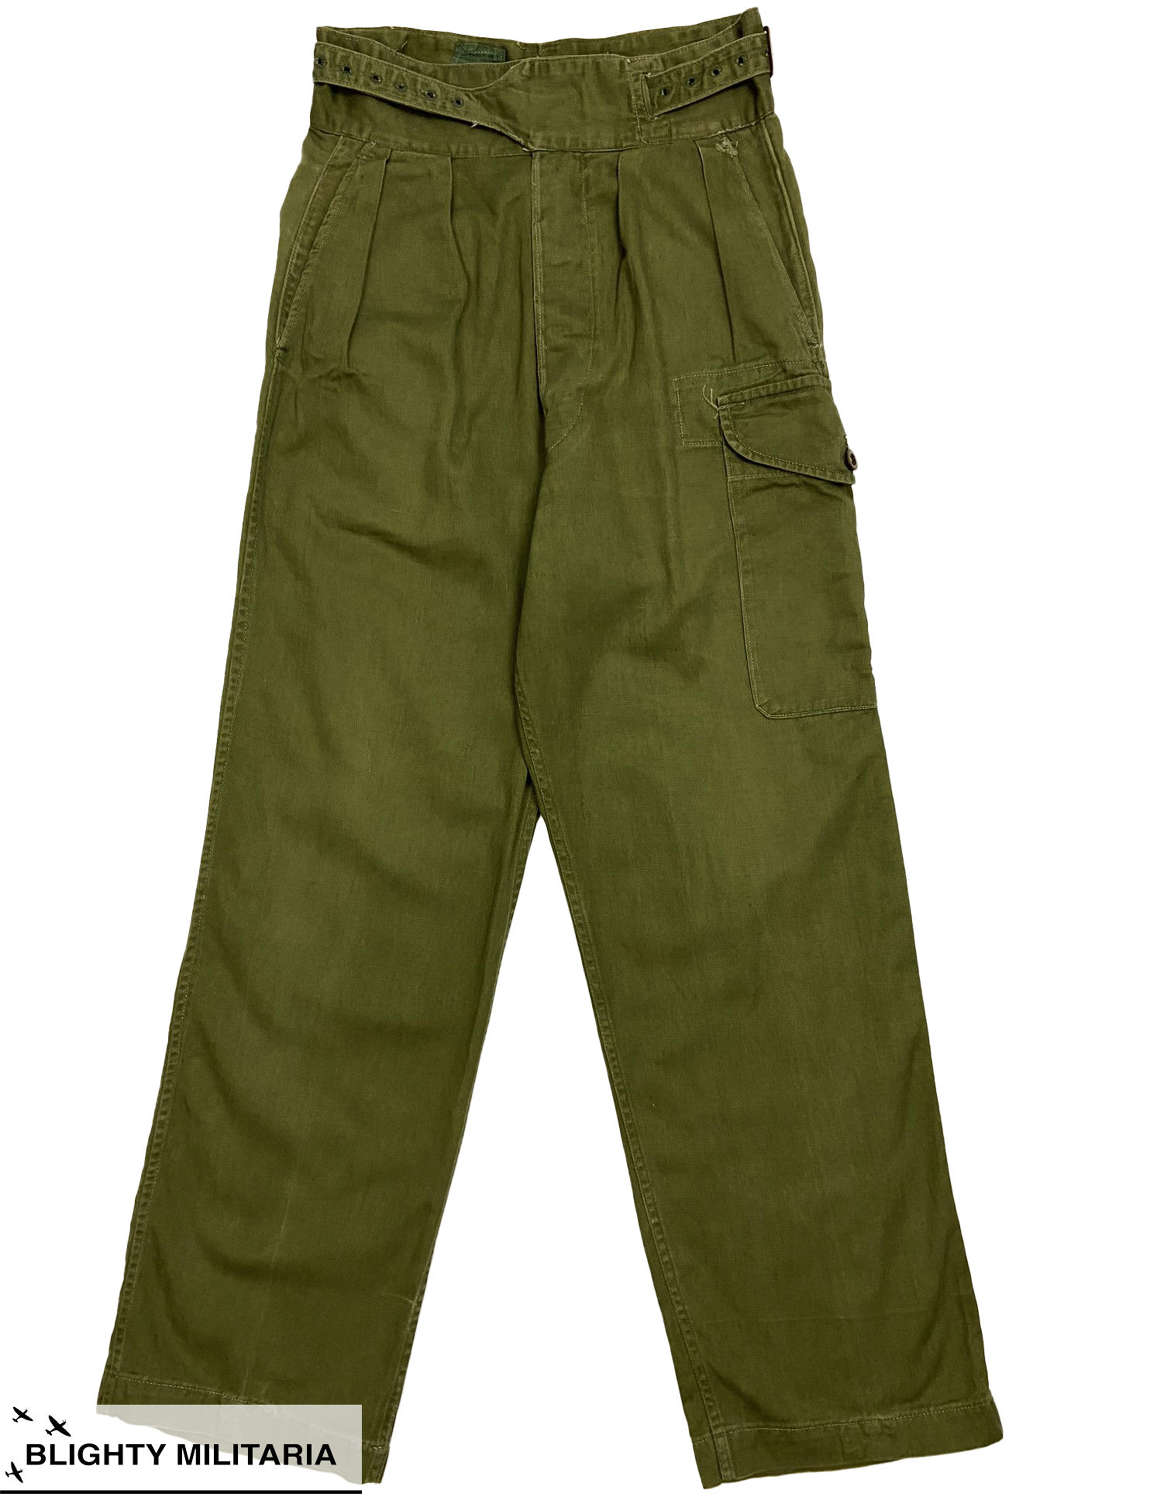 Original 1955 Dated 1950 Pattern Drill Green Trousers - Size 5